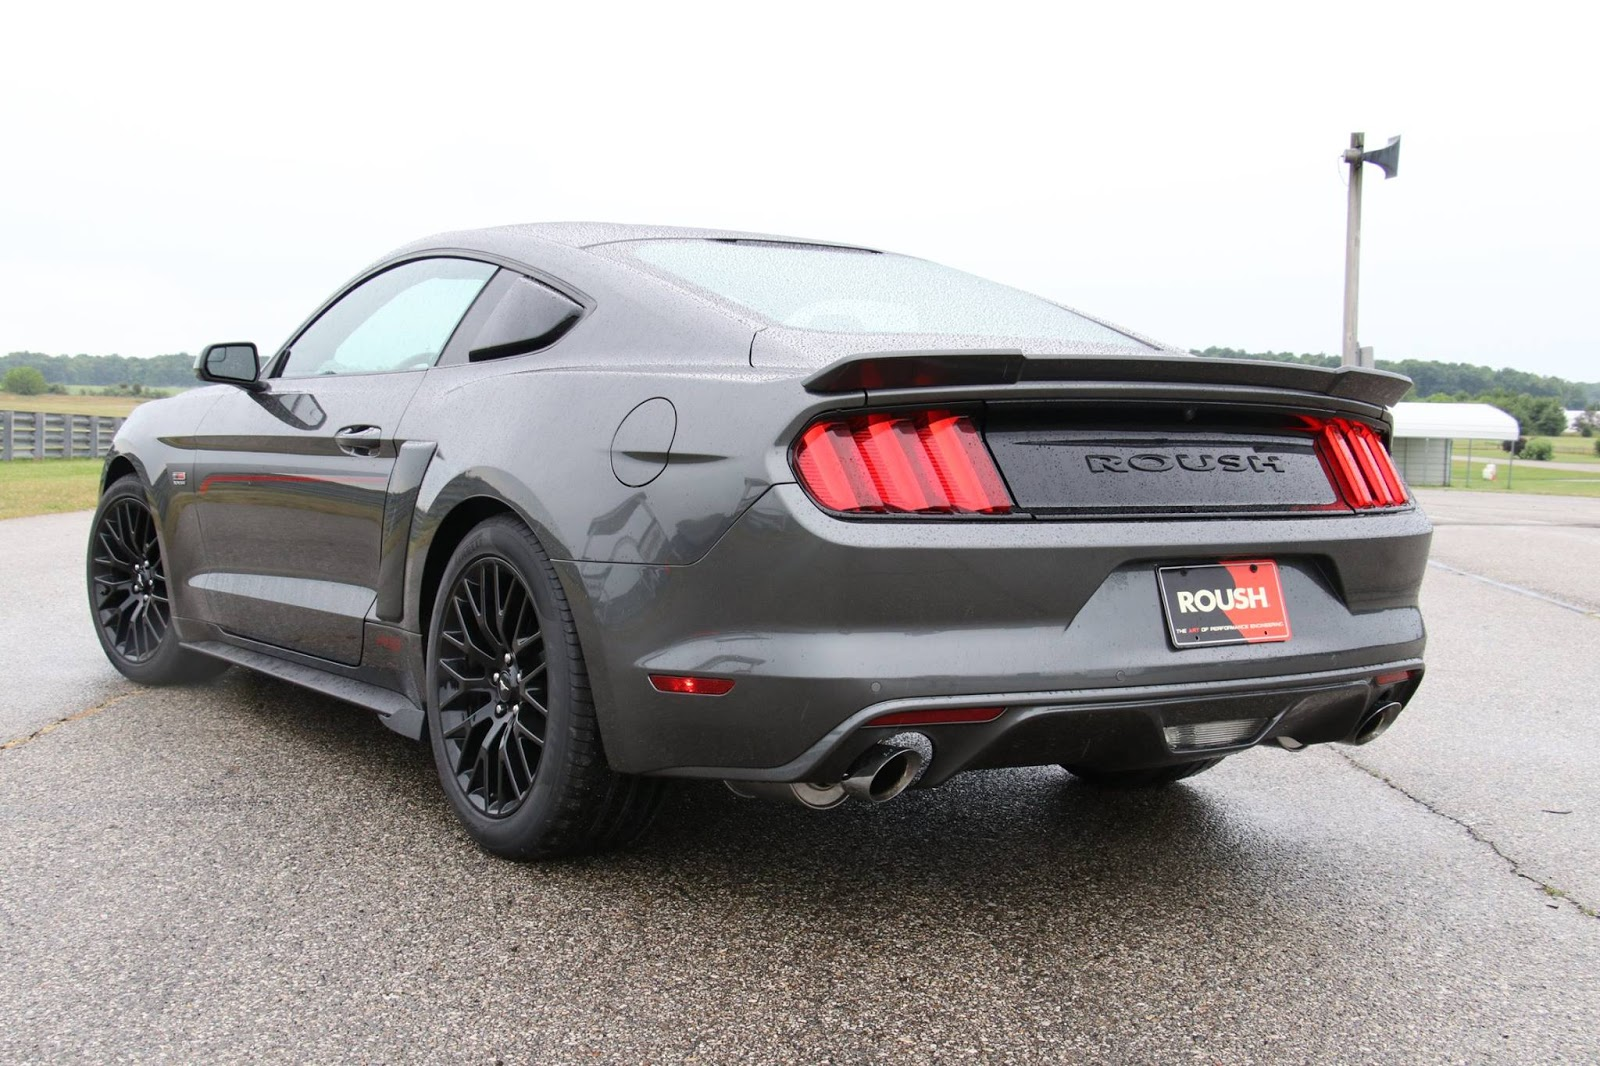 2016 roush ford mustang rs dark cars wallpapers. Black Bedroom Furniture Sets. Home Design Ideas